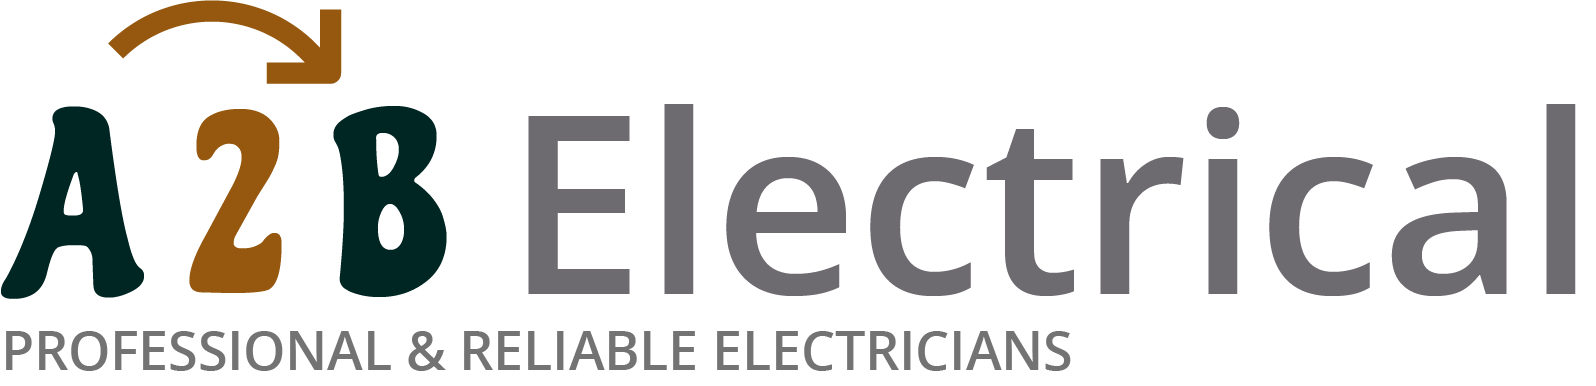 If you have electrical wiring problems in Edgware, we can provide an electrician to have a look for you.